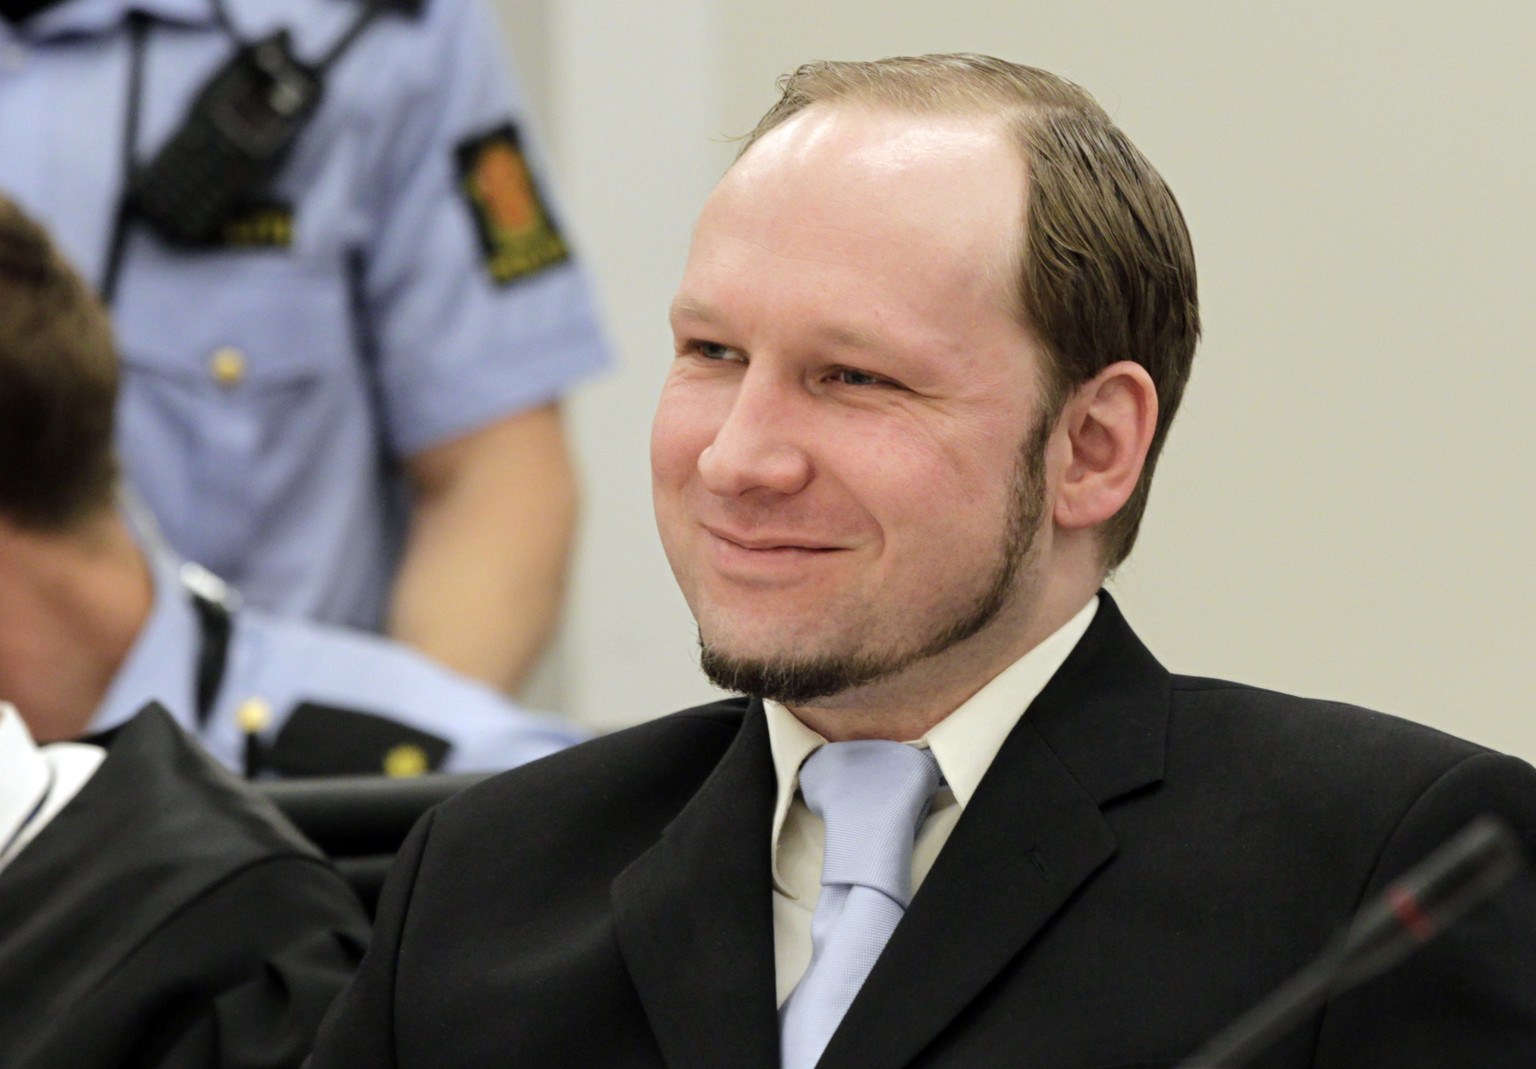 Mass killer Anders Behring Breivik smiles during his trial in room 250 of Oslo's central court on June 21, 2012.  The trial of Anders Behring Breivik, who killed 77 people in Norway last July, enters the final stretch with the prosecutors' call for him to be sent either to prison or to a psychiatric ward. Prosecutors Svein Holden and Inga Bejer Engh are to begin presenting their much-awaited closing arguments at 1000 GMT, at the end of which they will reveal whether they want the court to find Breivik responsible or not for his actions. AFP PHOTO / SCANPIX/ROALD BERIT        (Photo credit should read ROALD BERIT/AFP/GettyImages)